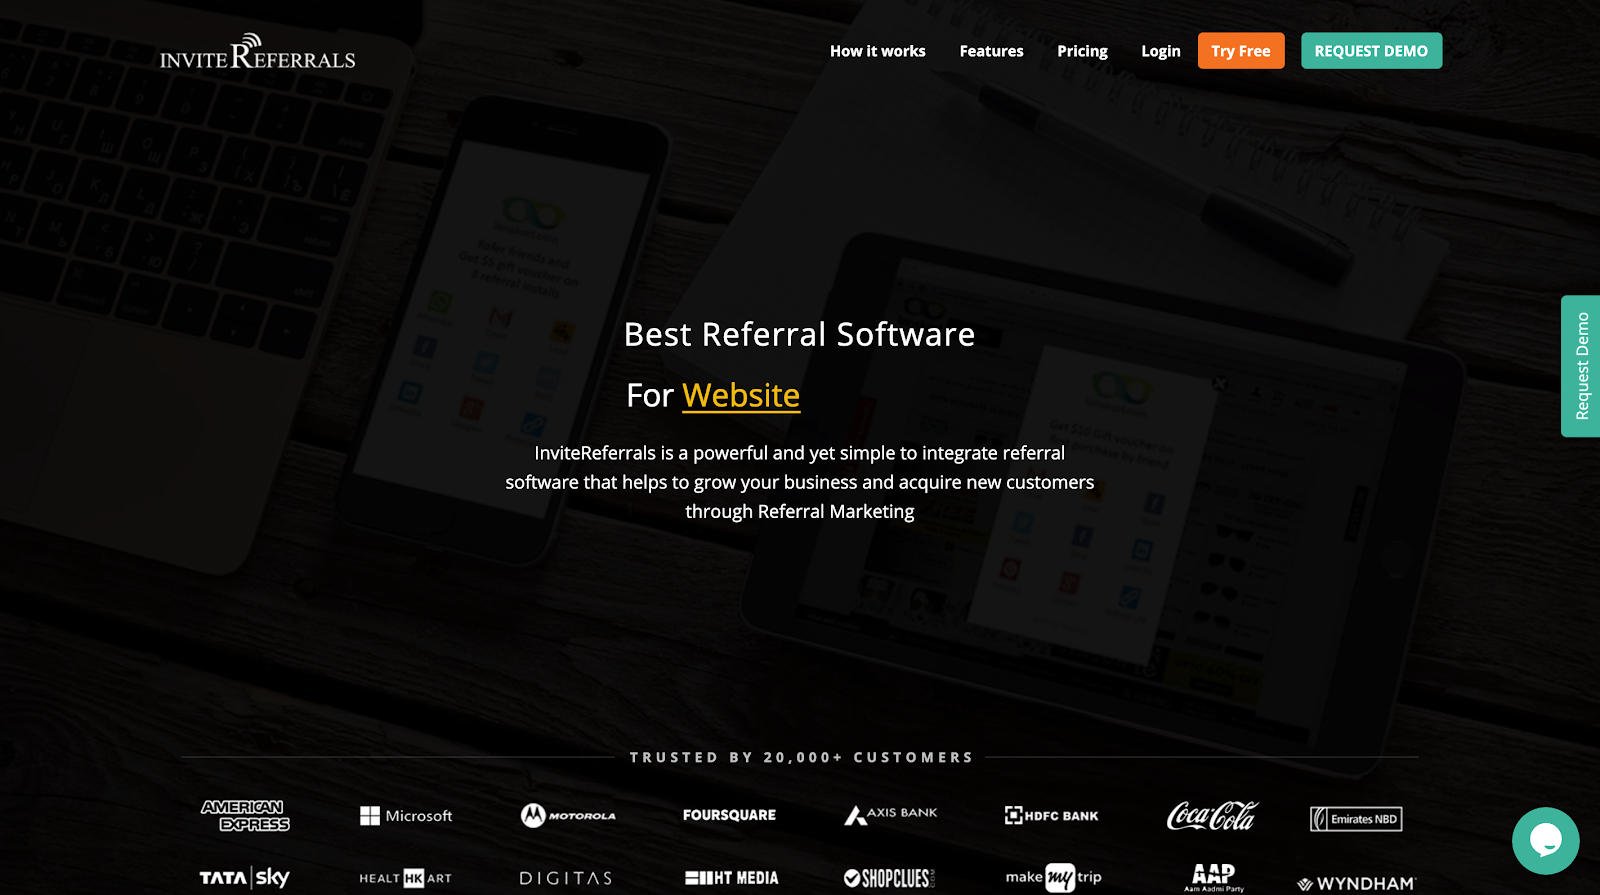 IMAGE REFERRAL MARKETING SOFTWARE